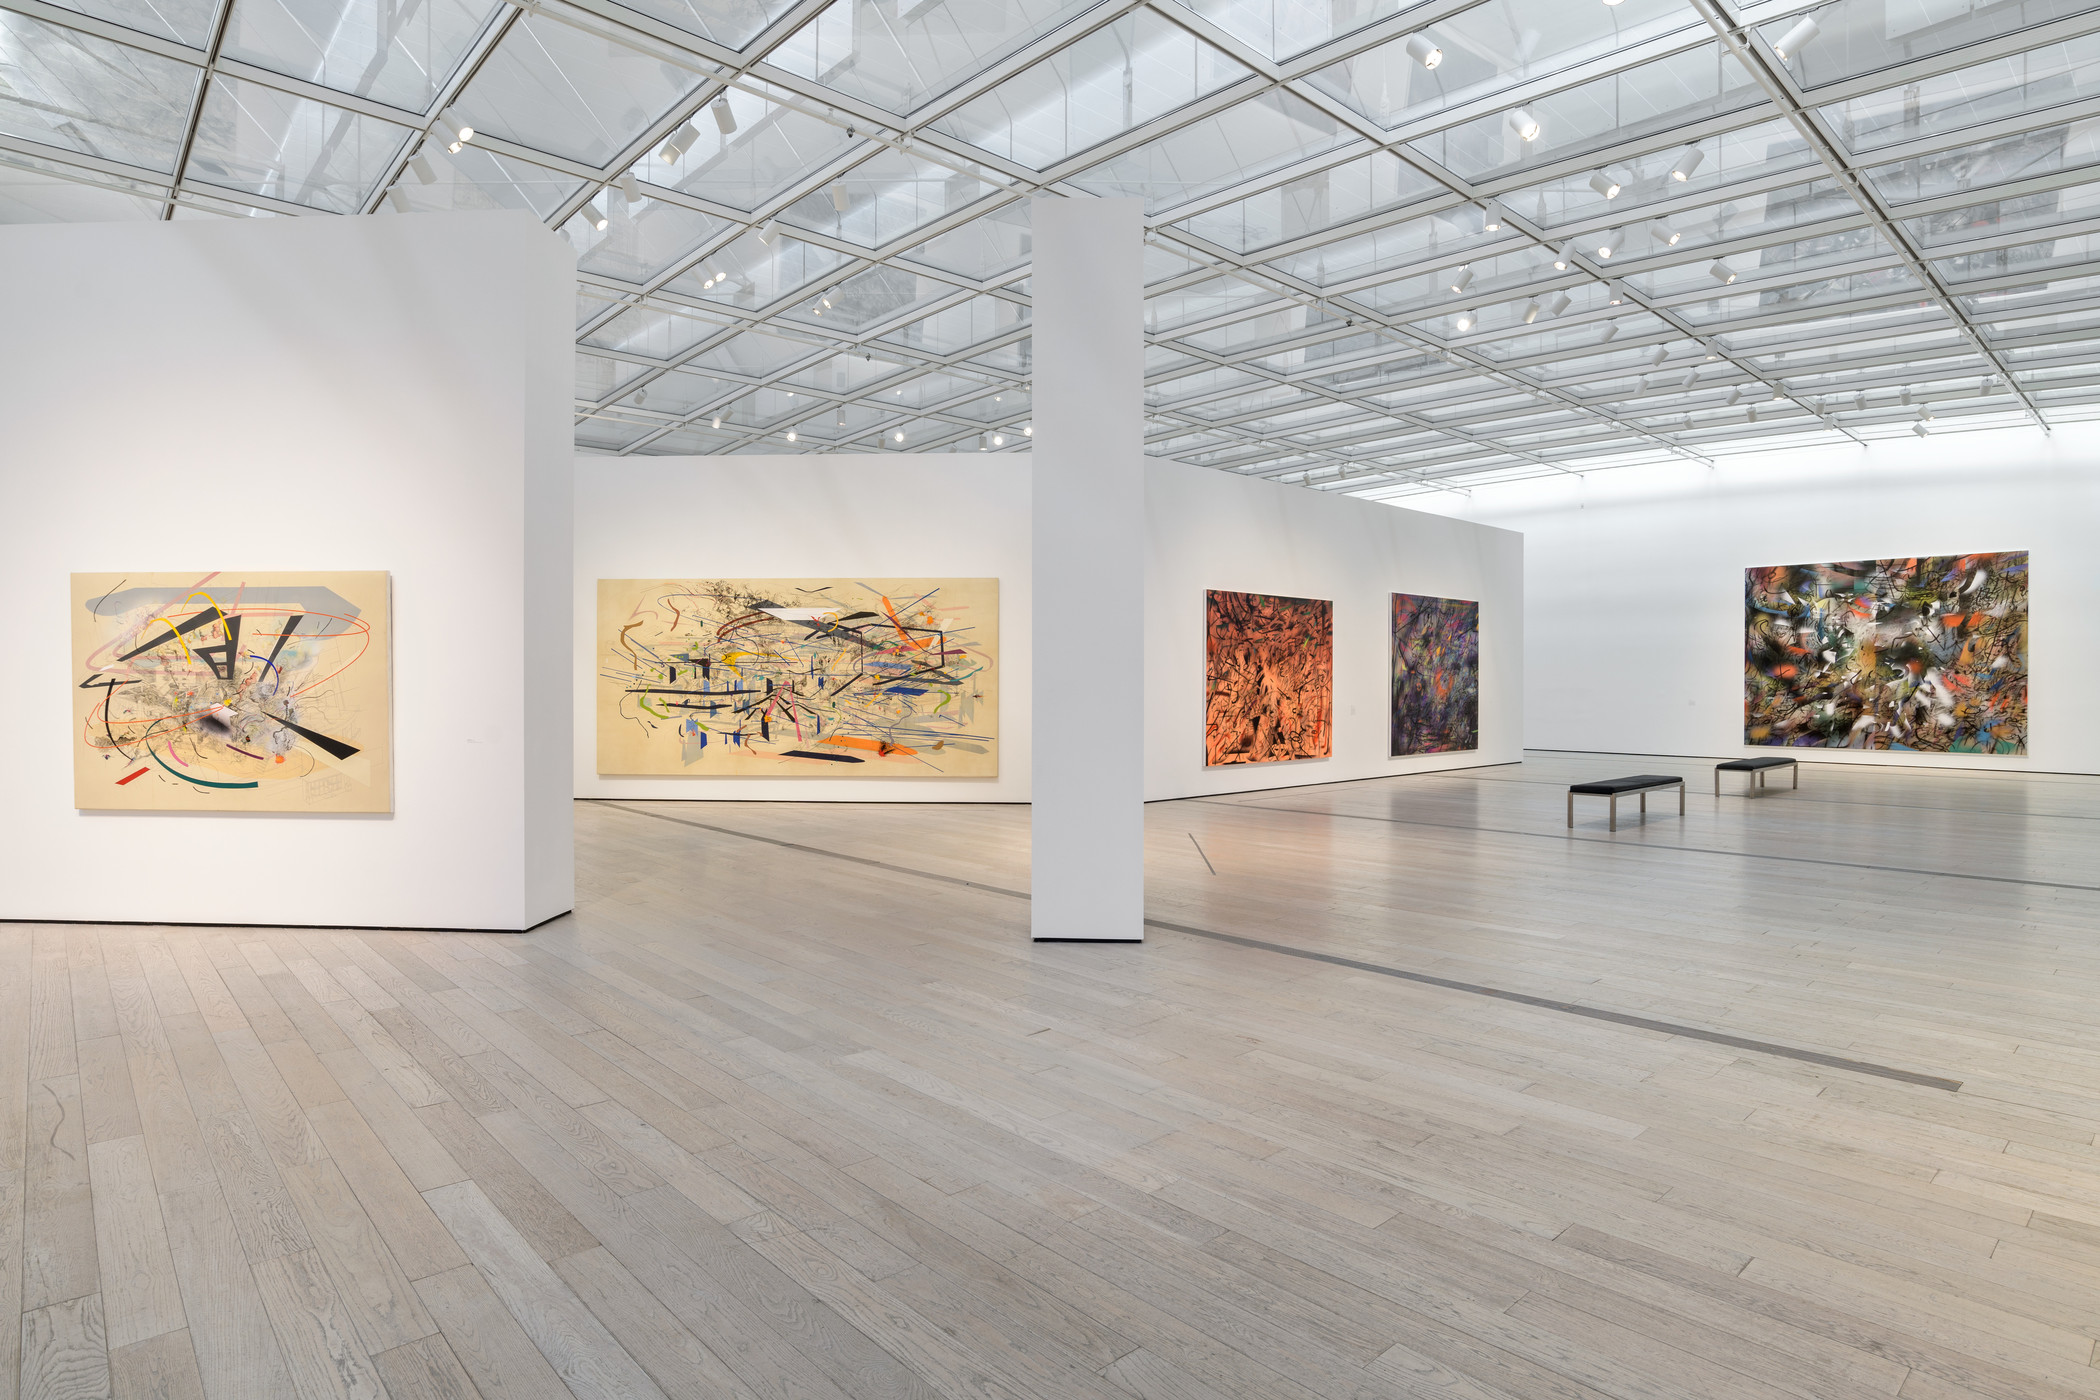 Installation photograph, Julie Mehretu, Los Angeles County Museum of Art, November 3, 2019–May 17, 2020, art © Julie Mehretu, photo © Museum Associates/LACMA. From left: Untitled 2, 2001, private collection, courtesy of Salon 94, New York; Retopistics: A Renegade Excavation, 2001, Crystal Bridges Museum of American Art, Bentonville, AR; 2013.28; Hineni (E. 3:4), 2018, Don de George Economou, 2019, Centre Pompidou, Paris, Musée national d'art moderne/Centre de création industrielle; Sun Ship (J.C.), 2018, Pinault Collection; Haka (and Riot), 2019, courtesy of the artist and Marian Goodman Gallery, New York